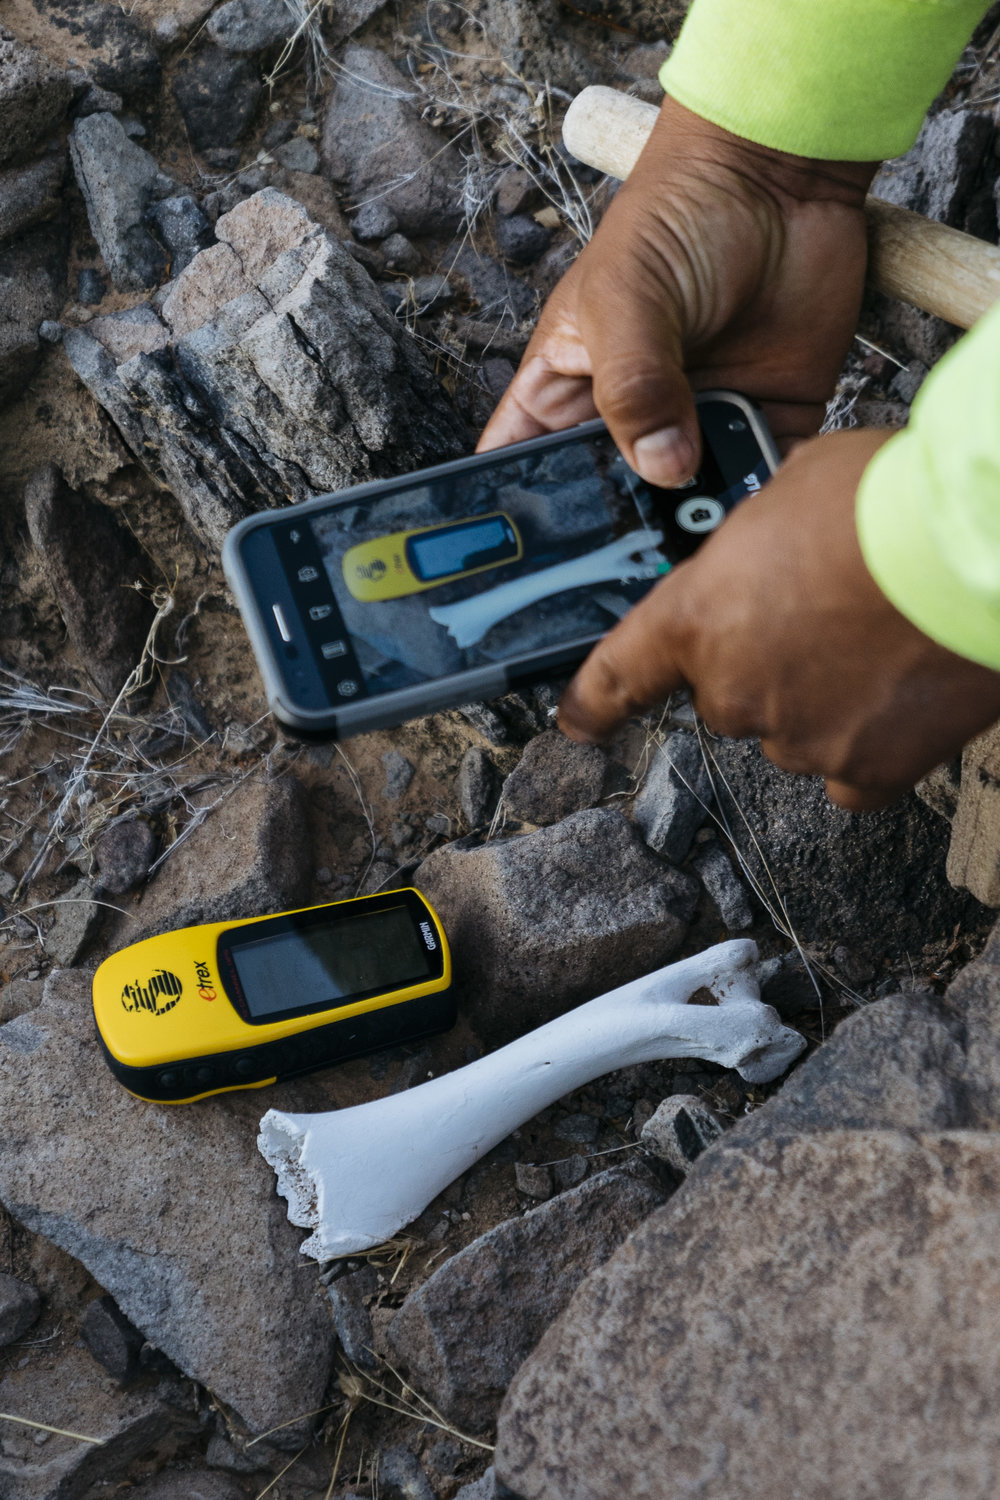 IMAGE CAPTION:  An Aguilas Del Desierto volunteer photographs GPS coordinates of an unidentified bone located in the Sonoran Desert. Because human remains can be the scene of a crime, volunteers photograph and document the locations of any remains and report the information to Border Patrol.